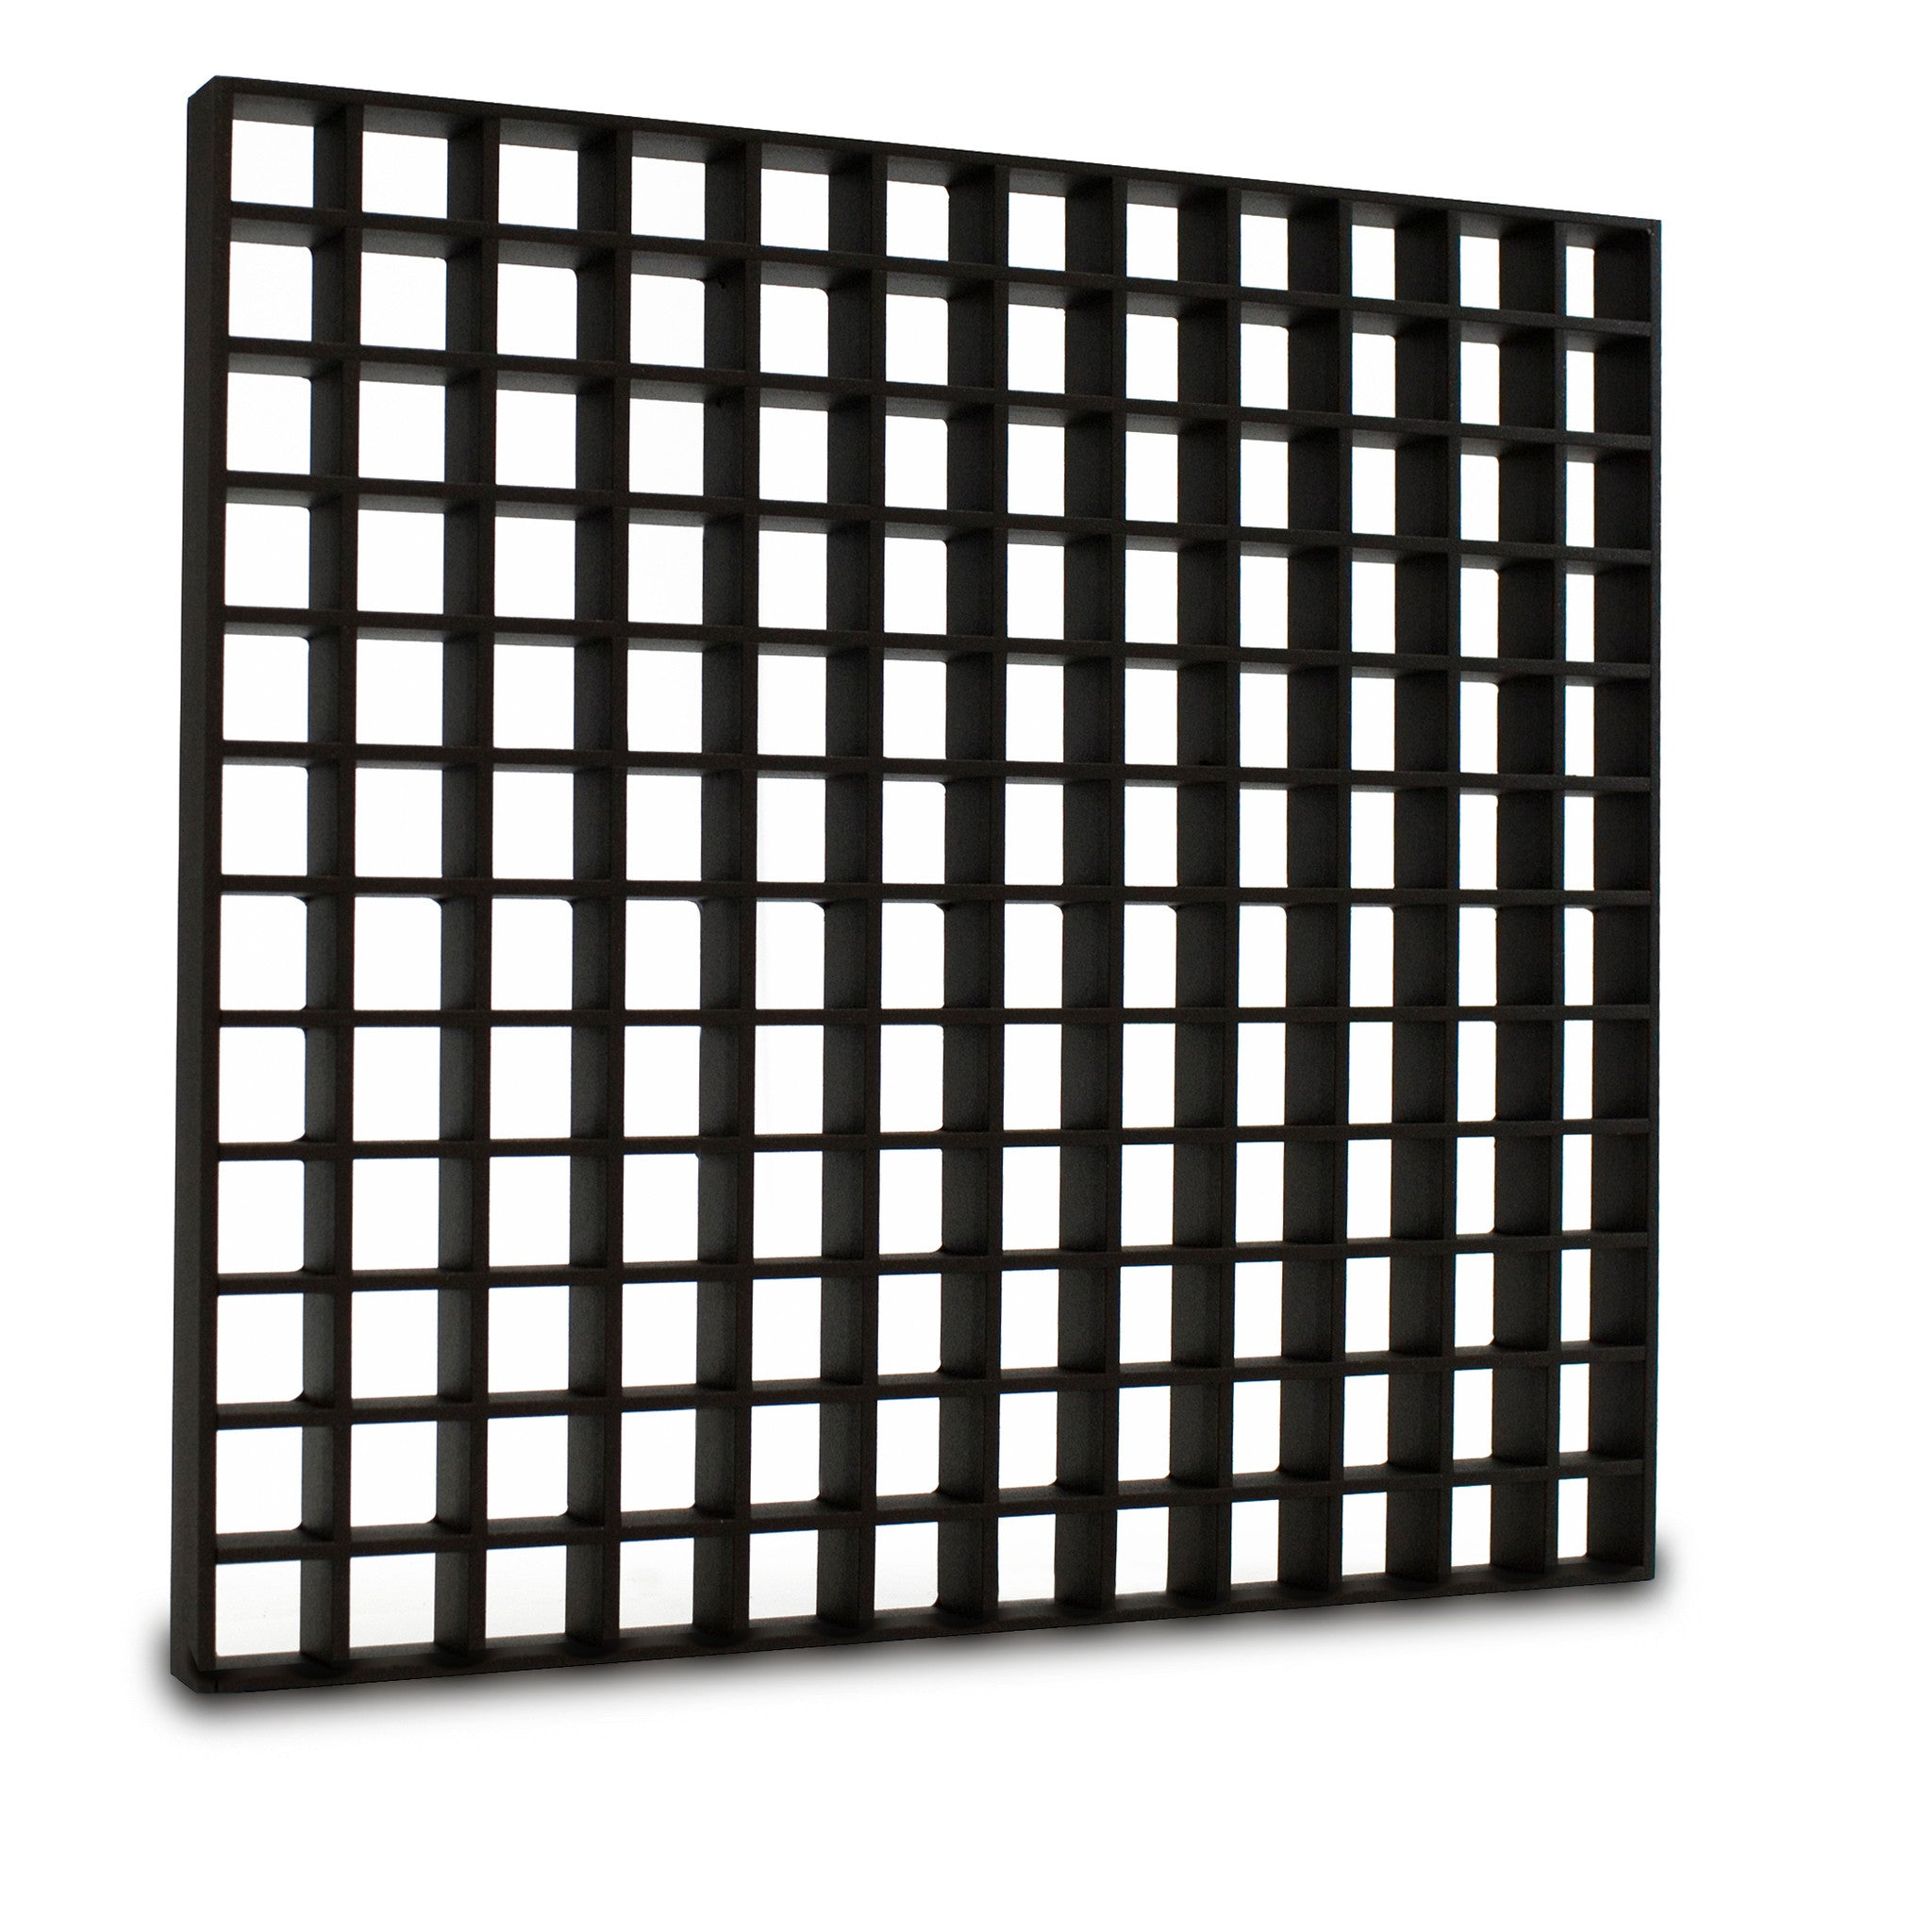 grille products | architectural grille